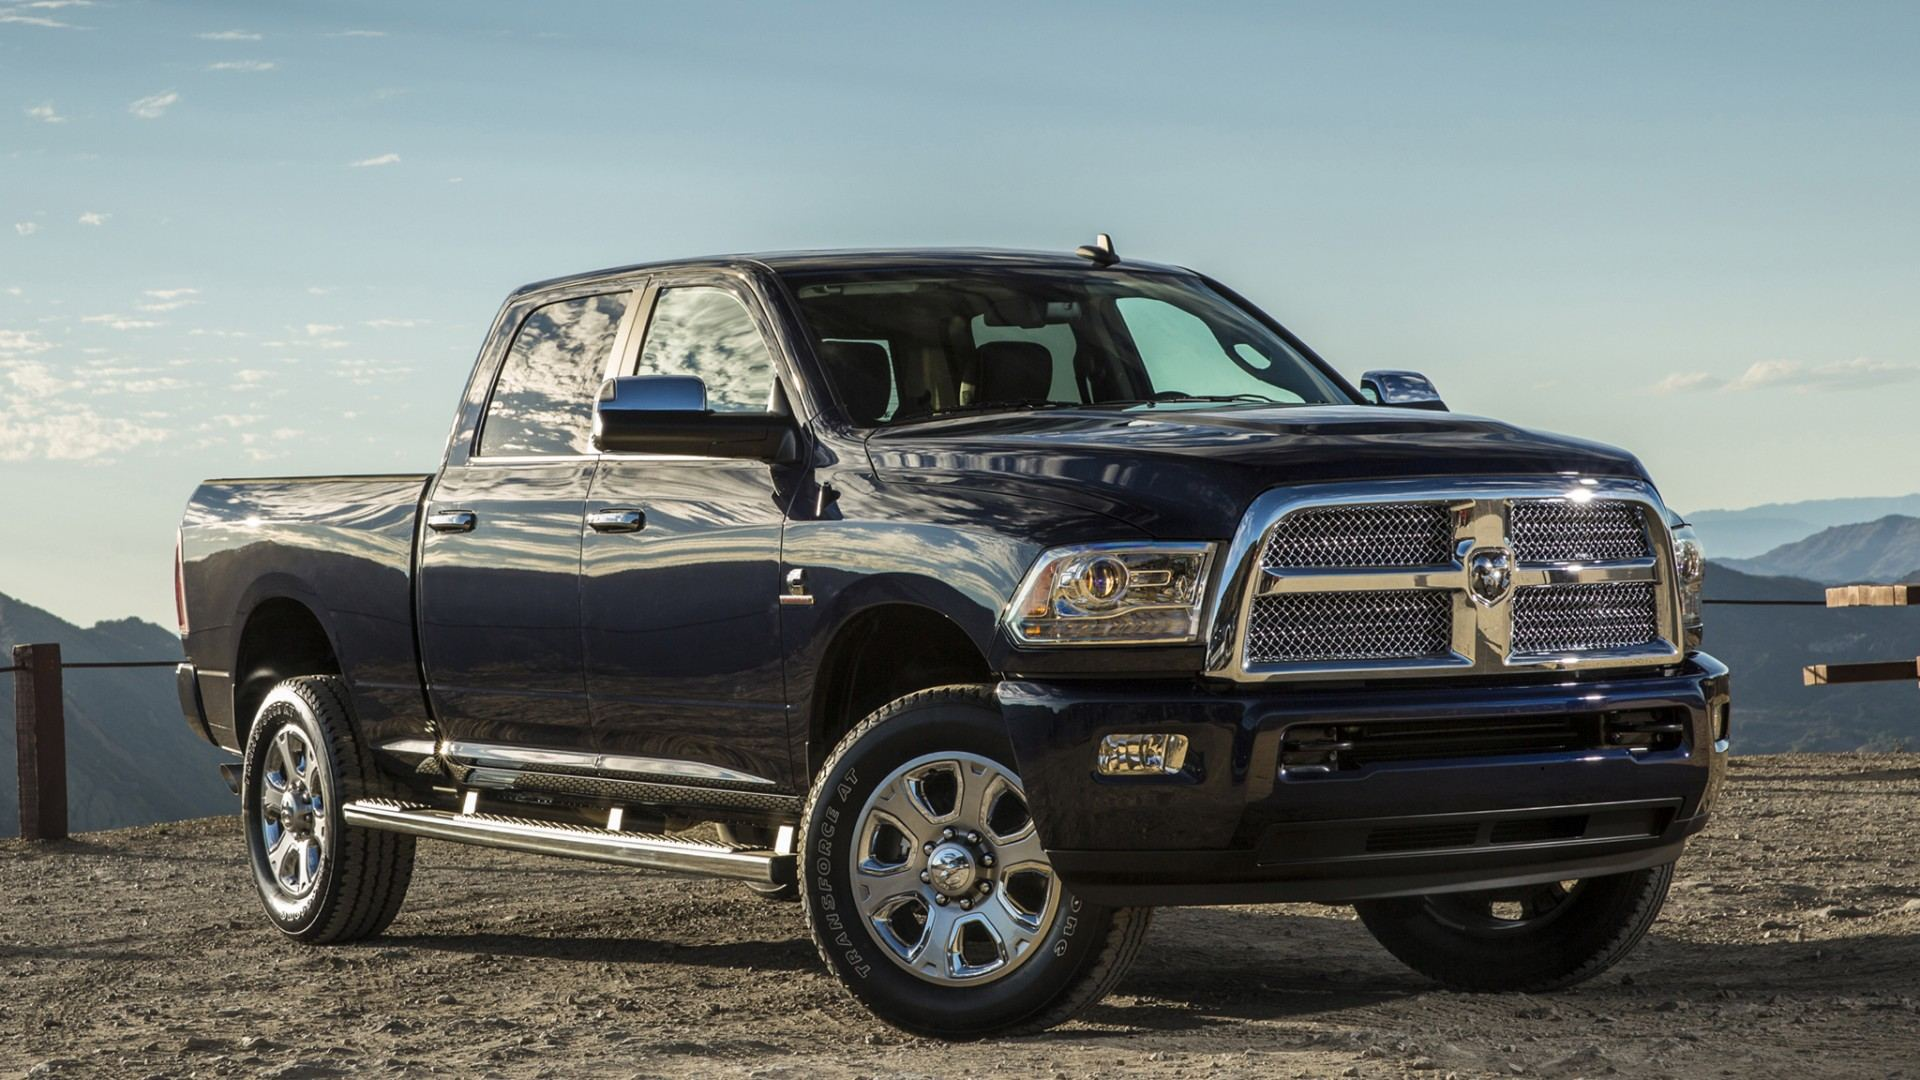 ram pickup wallpapers images photos pictures backgrounds. Black Bedroom Furniture Sets. Home Design Ideas